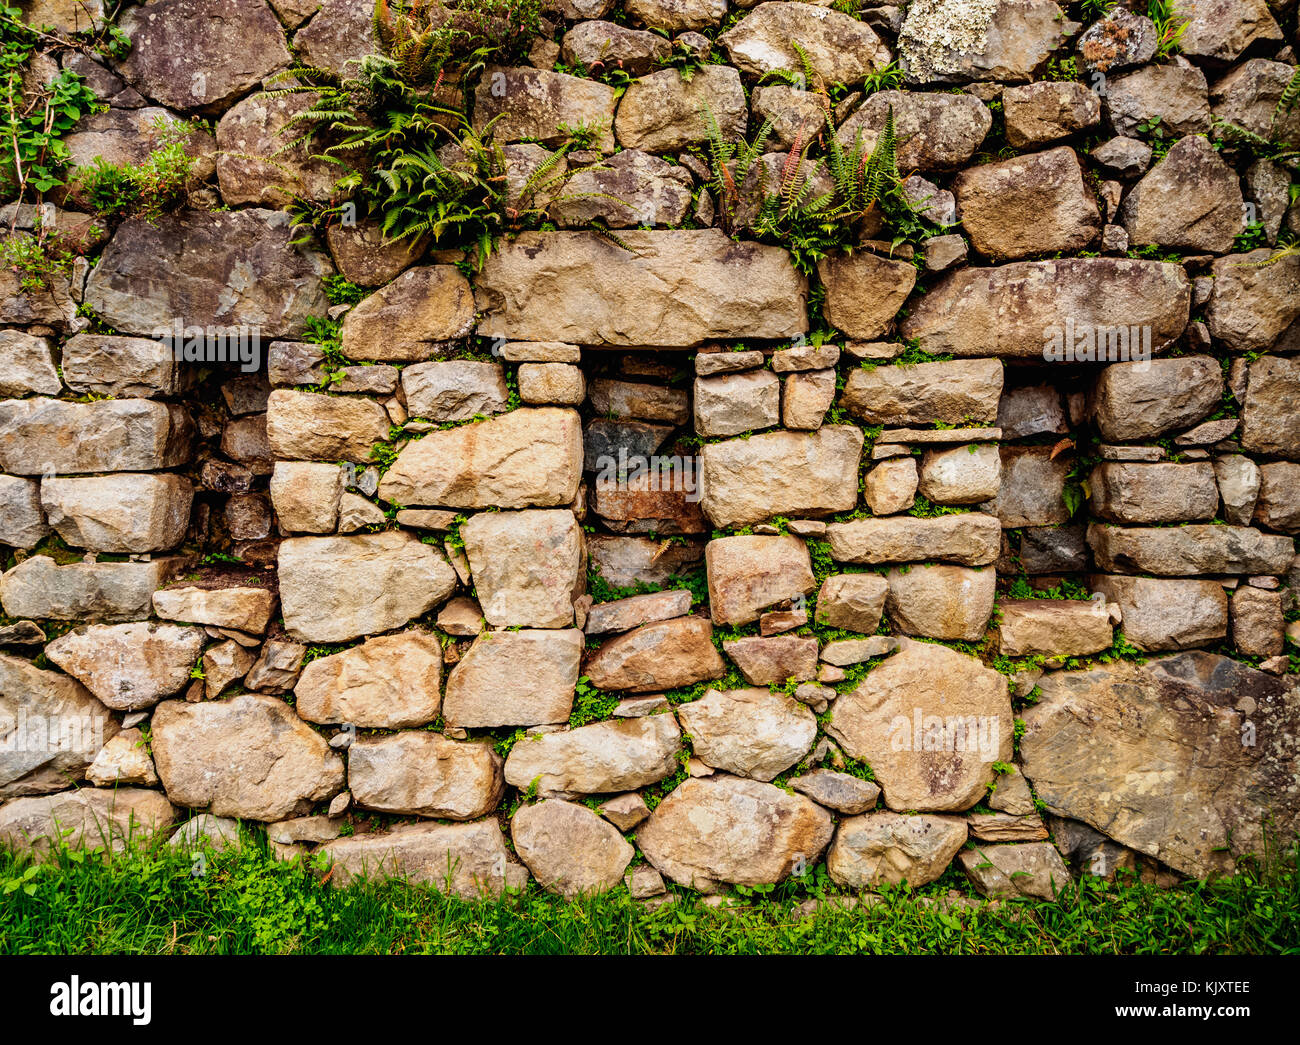 Trapezoidal niches, Inca Stonework, Machu Picchu, Cusco Region, Peru - Stock Image